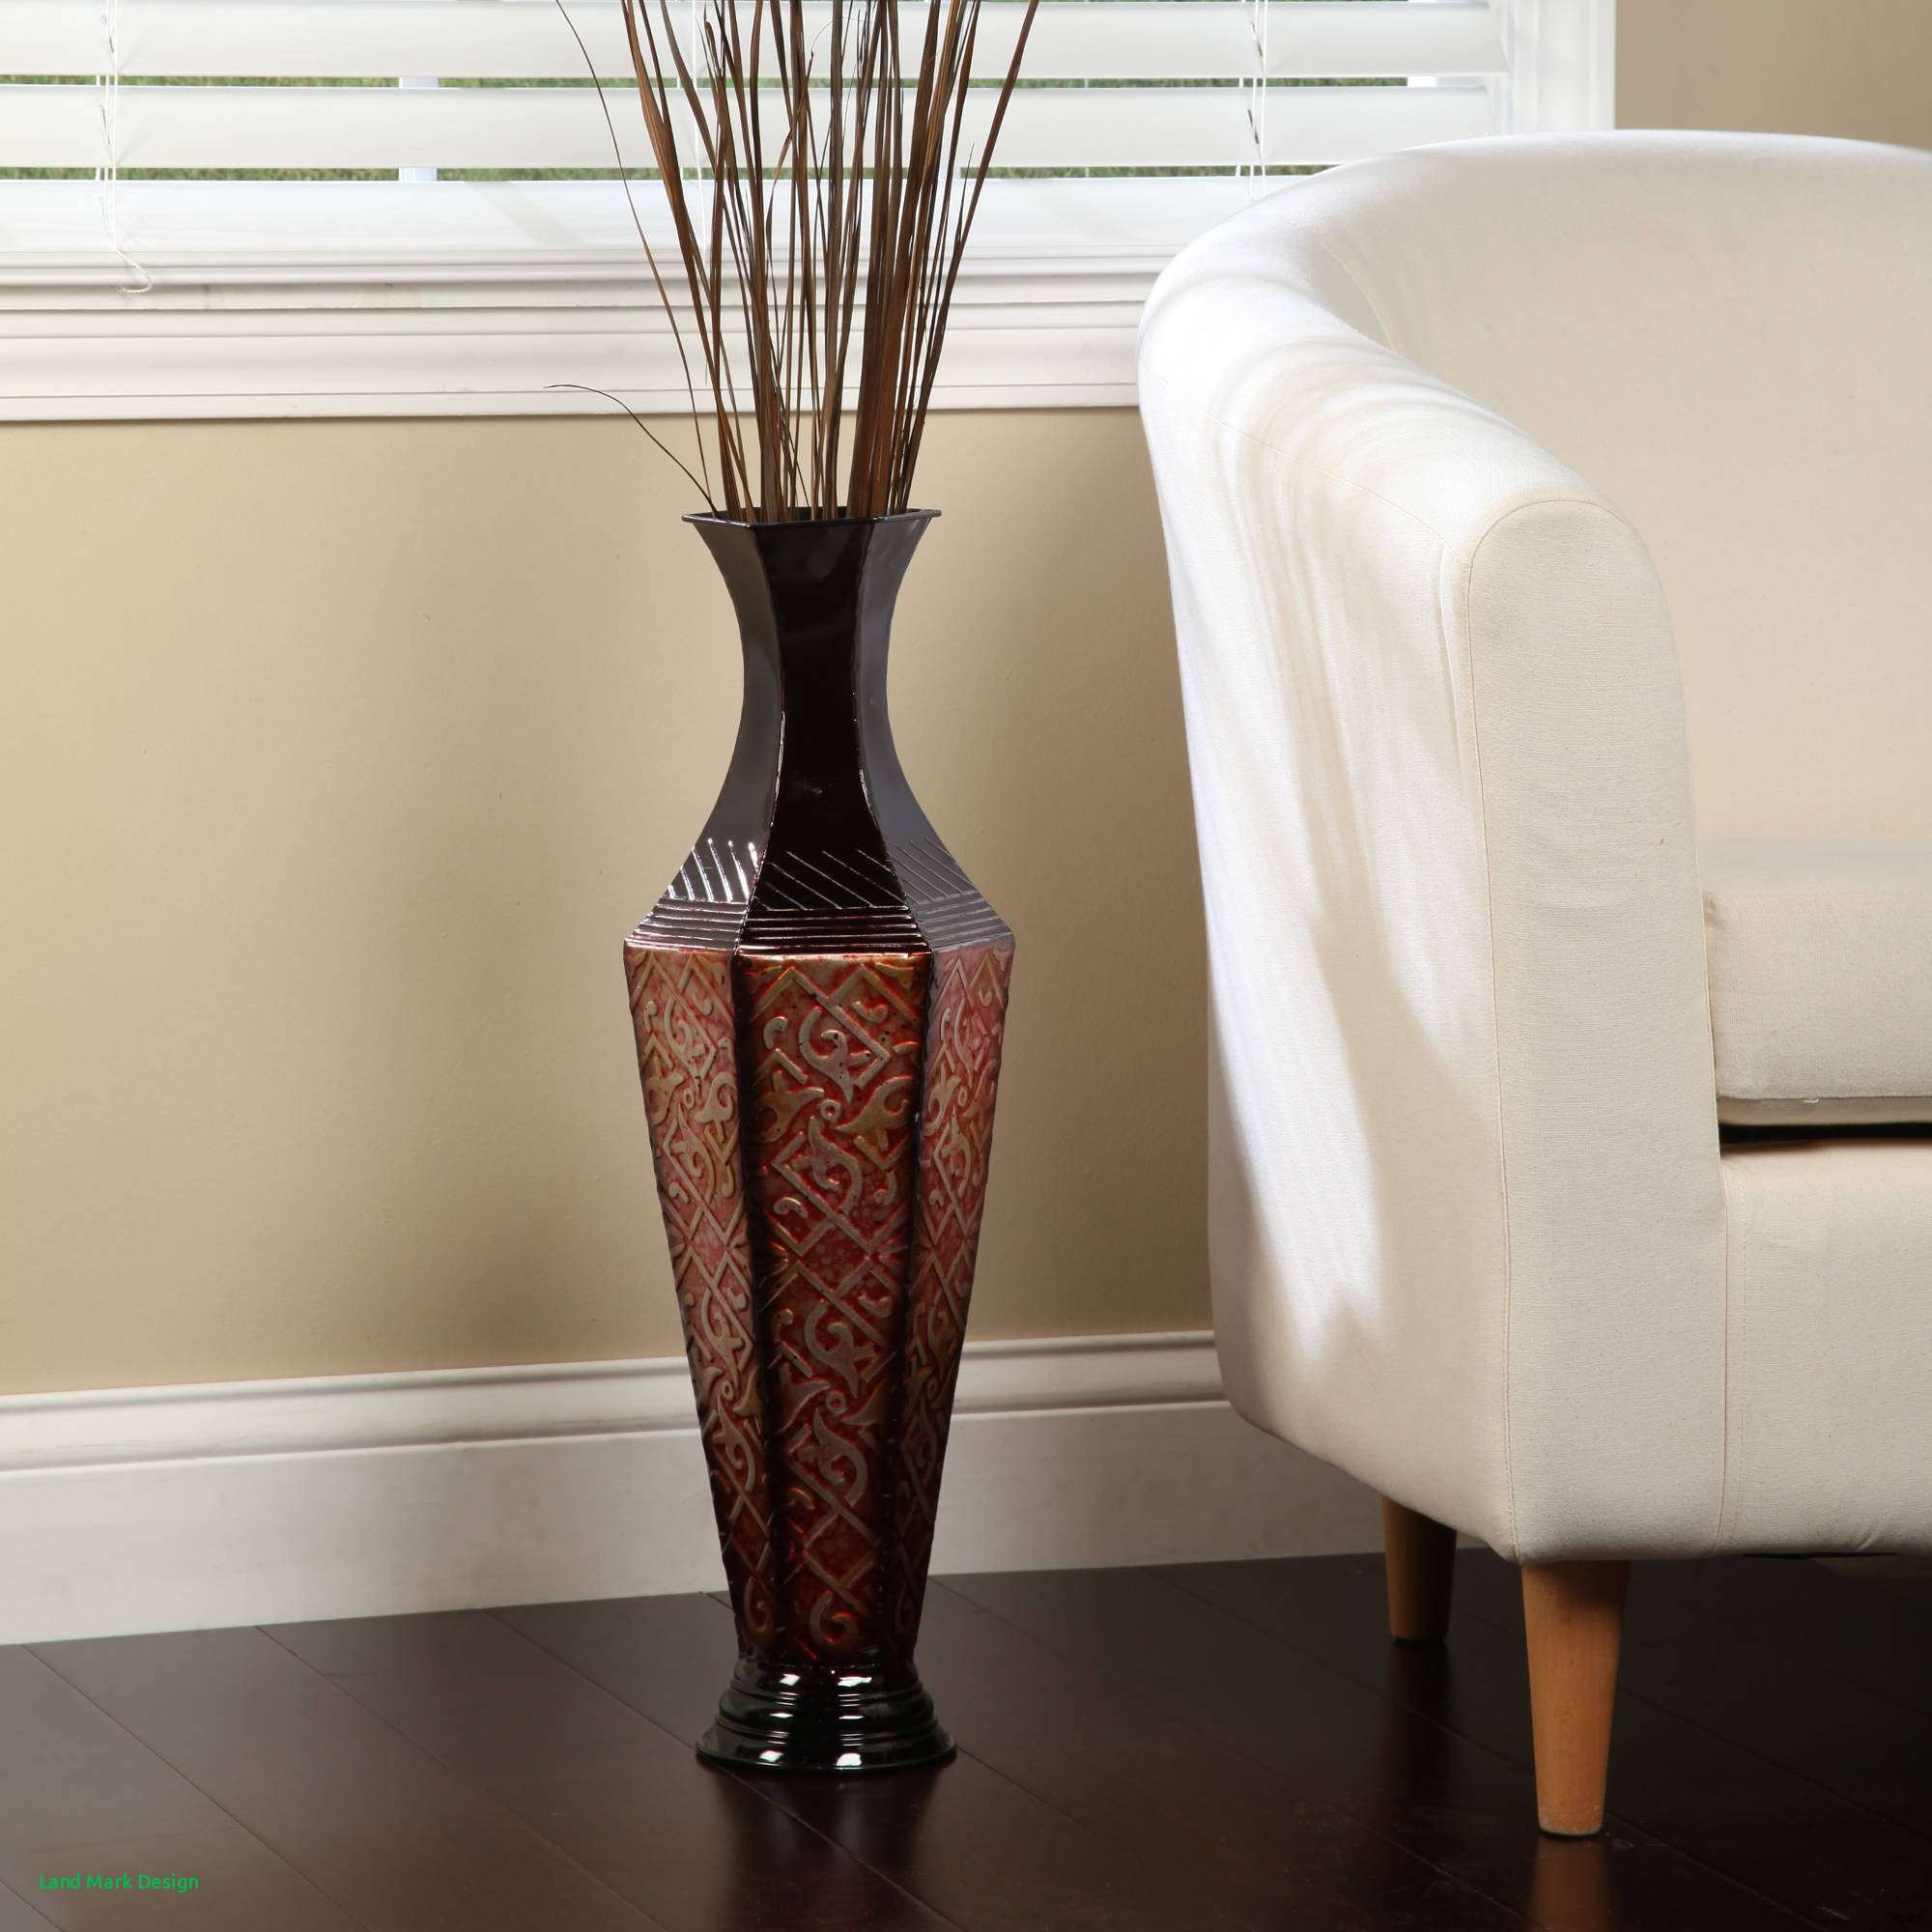 extra large floor vases cheap of large wood floor vase collection vases flower floor vase with throughout large wood floor vase stock floor vases of large wood floor vase collection vases flower floor